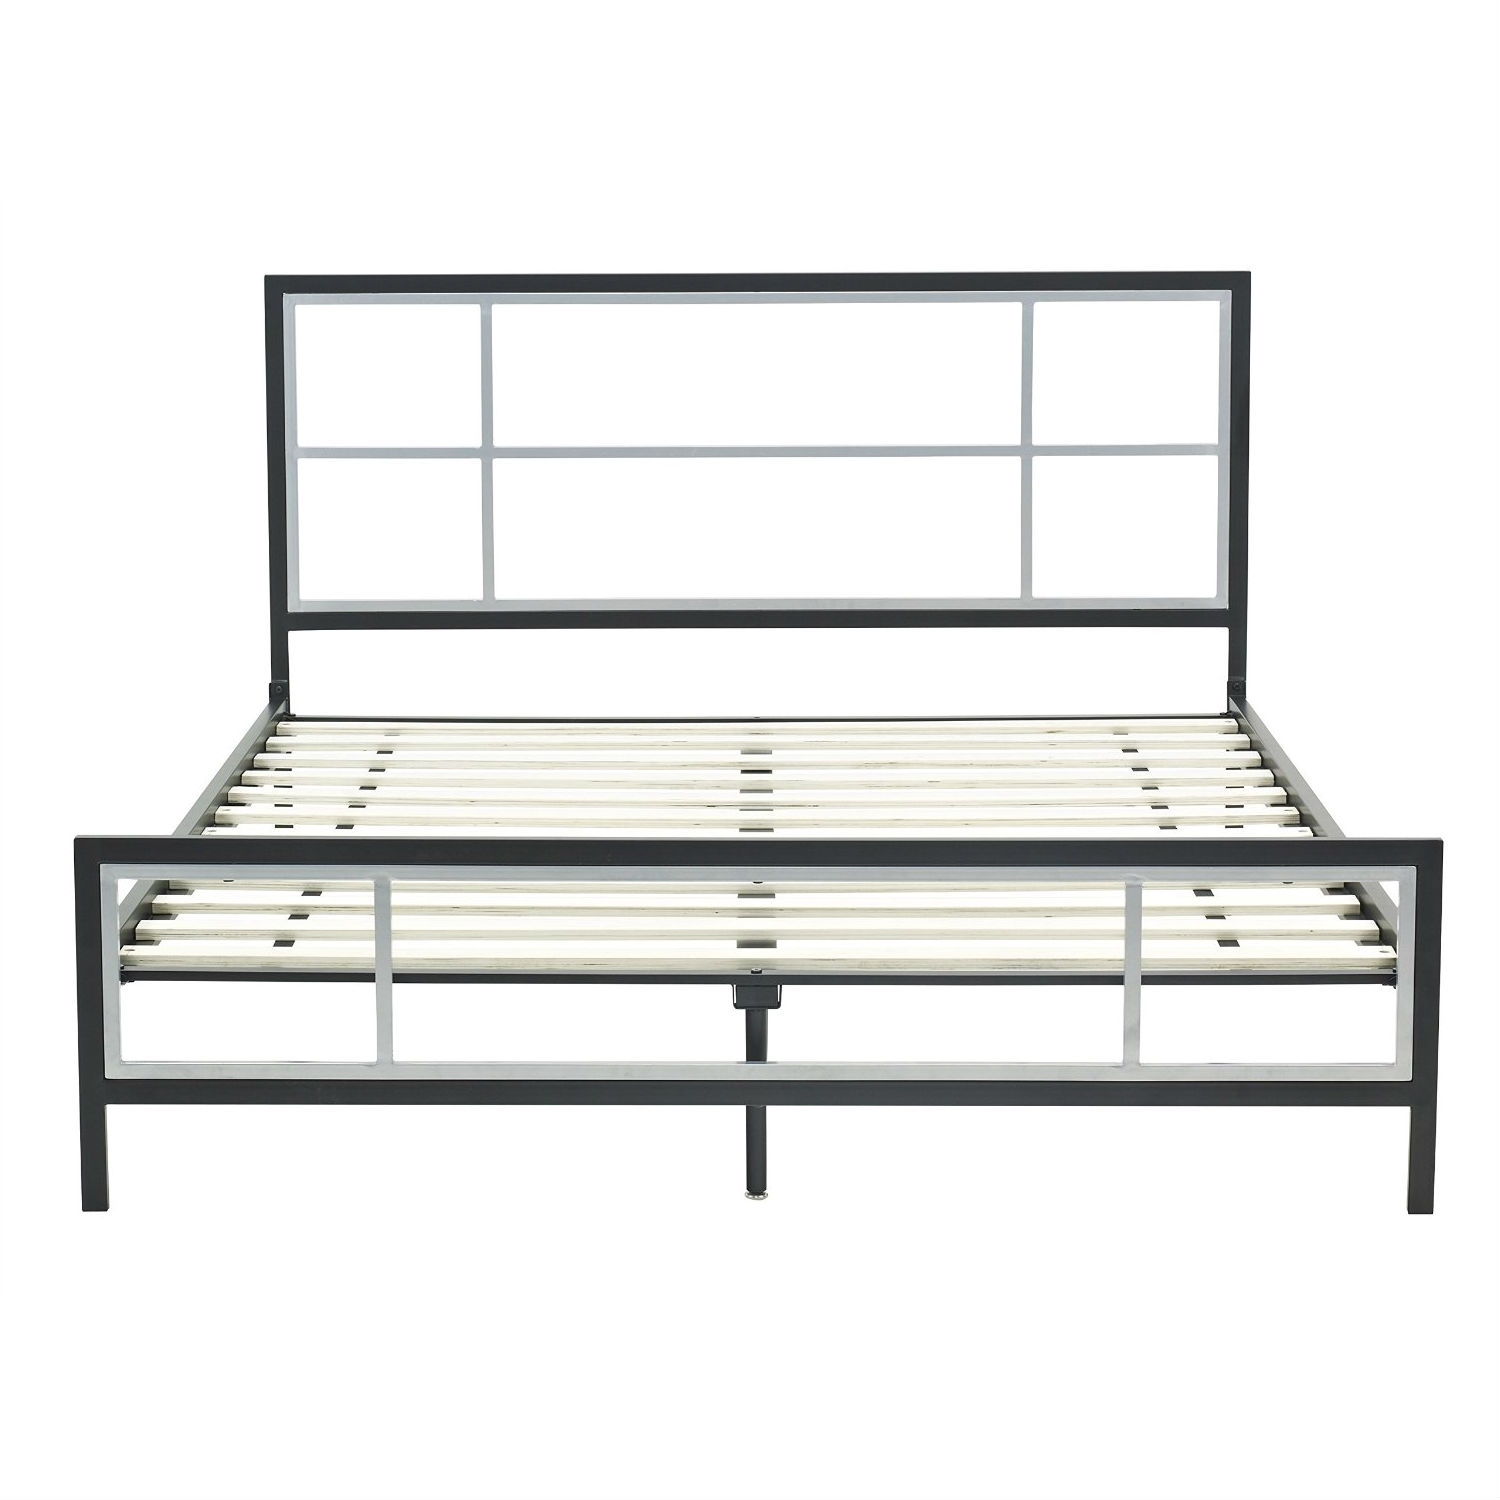 Steel Bed Frames Queen Size